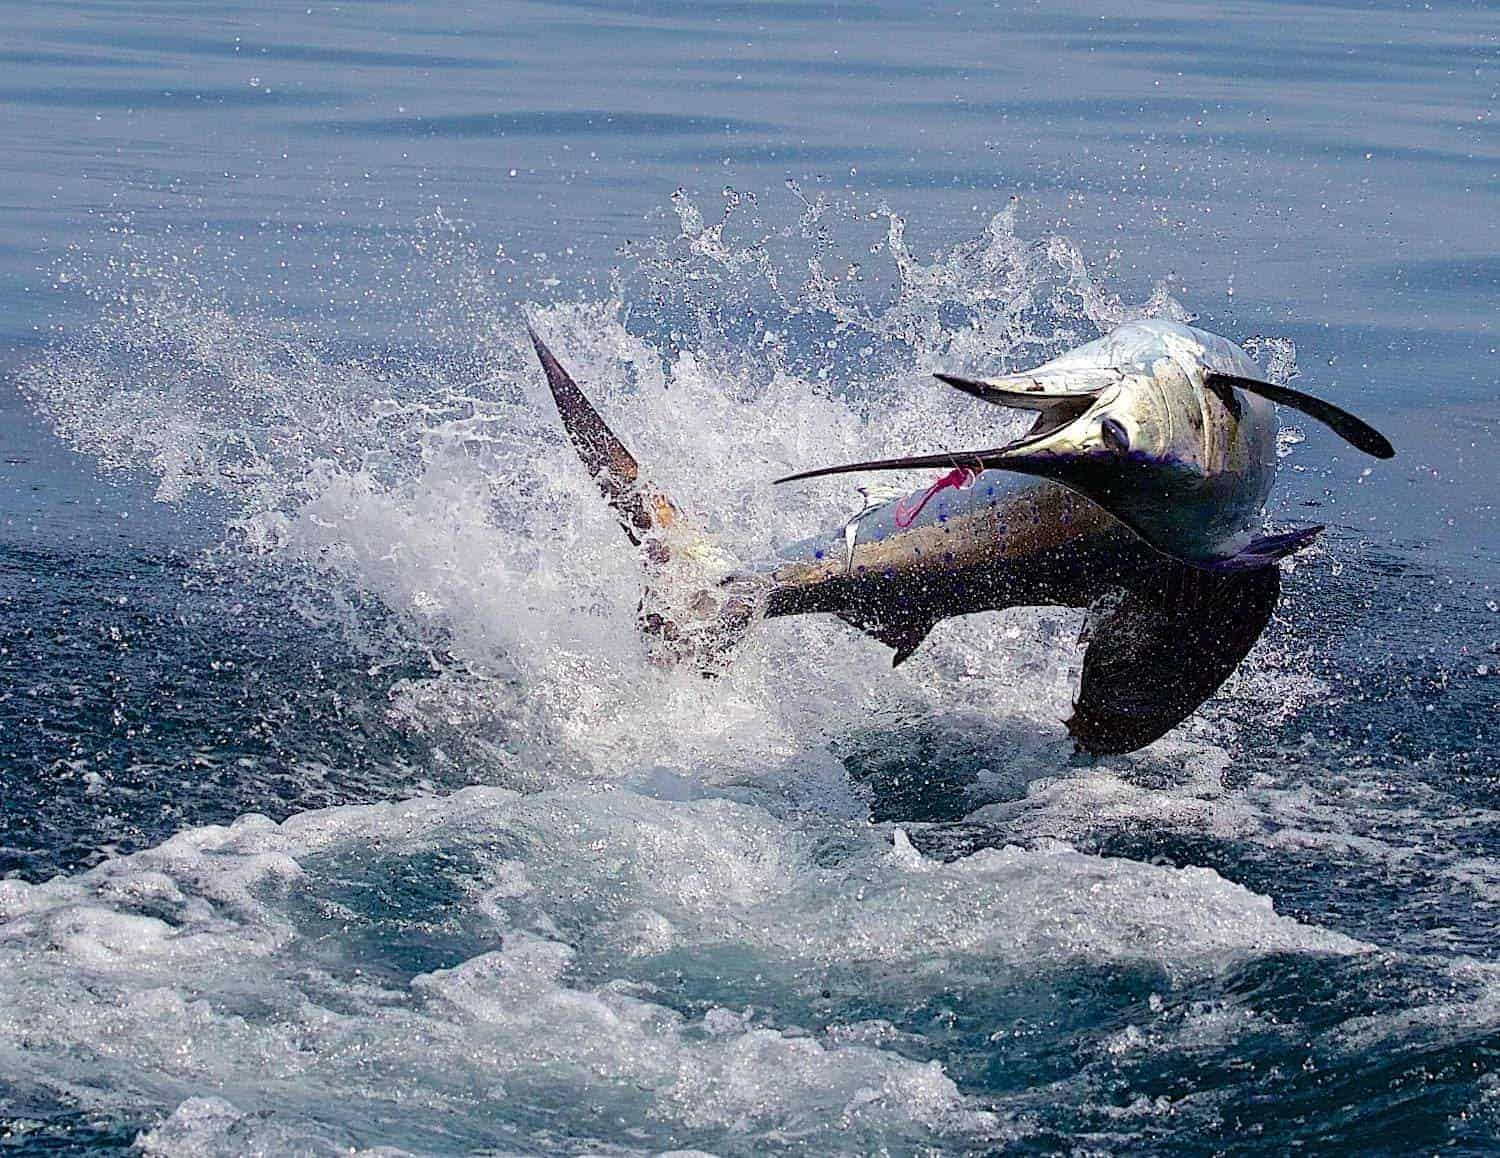 A sailfish off the coast of Costa Rica.